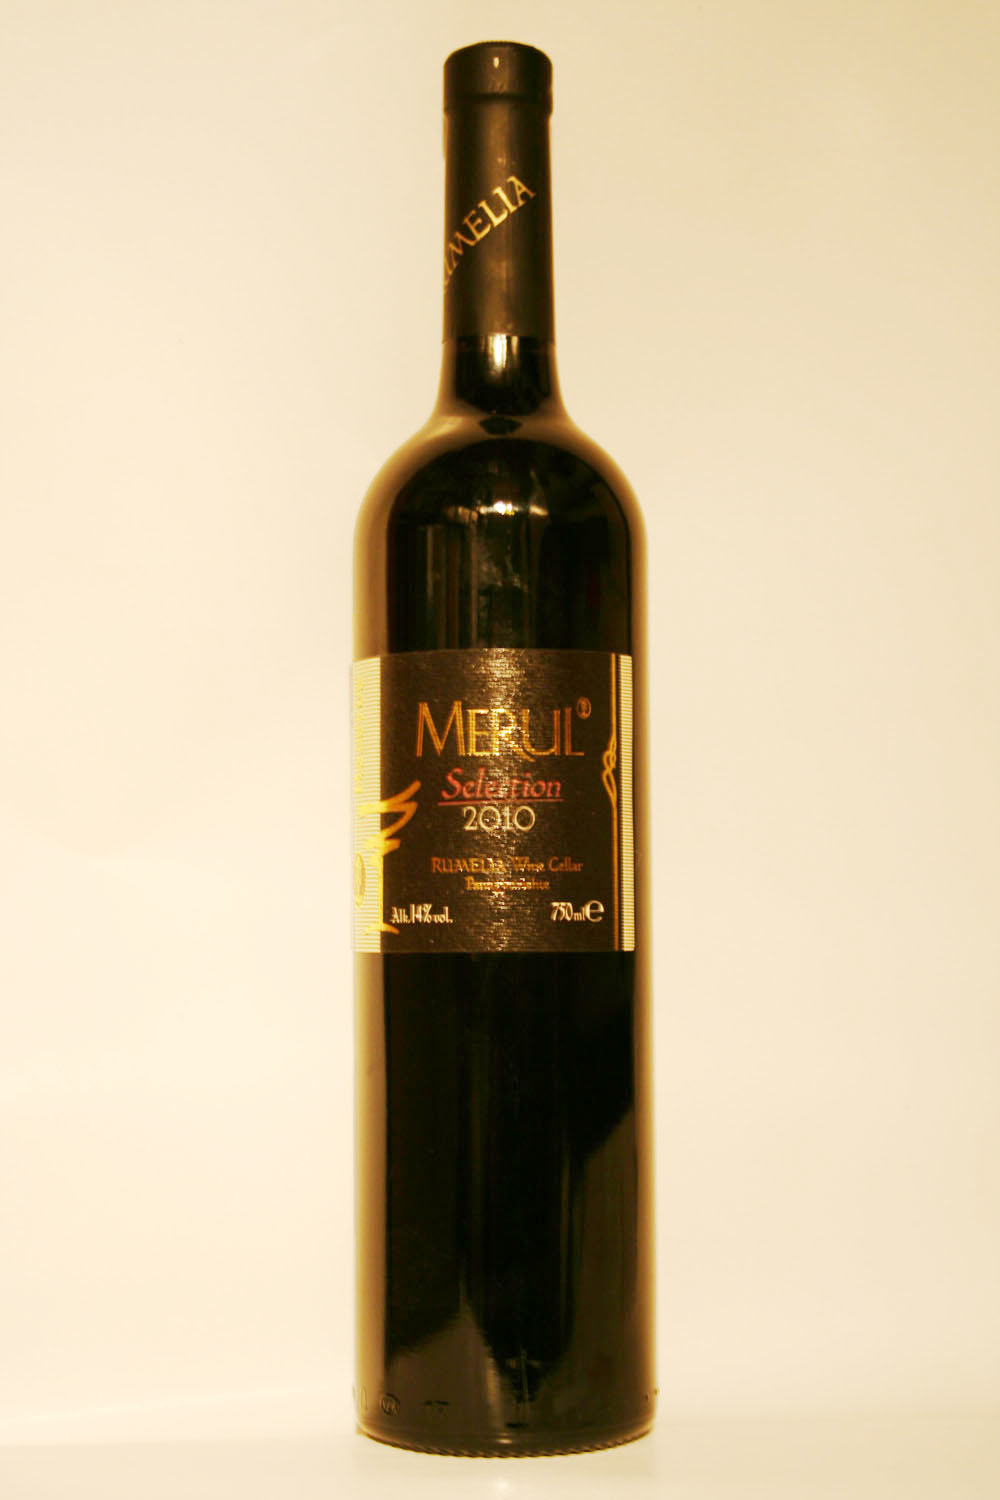 Merul Reservе Selection 2010